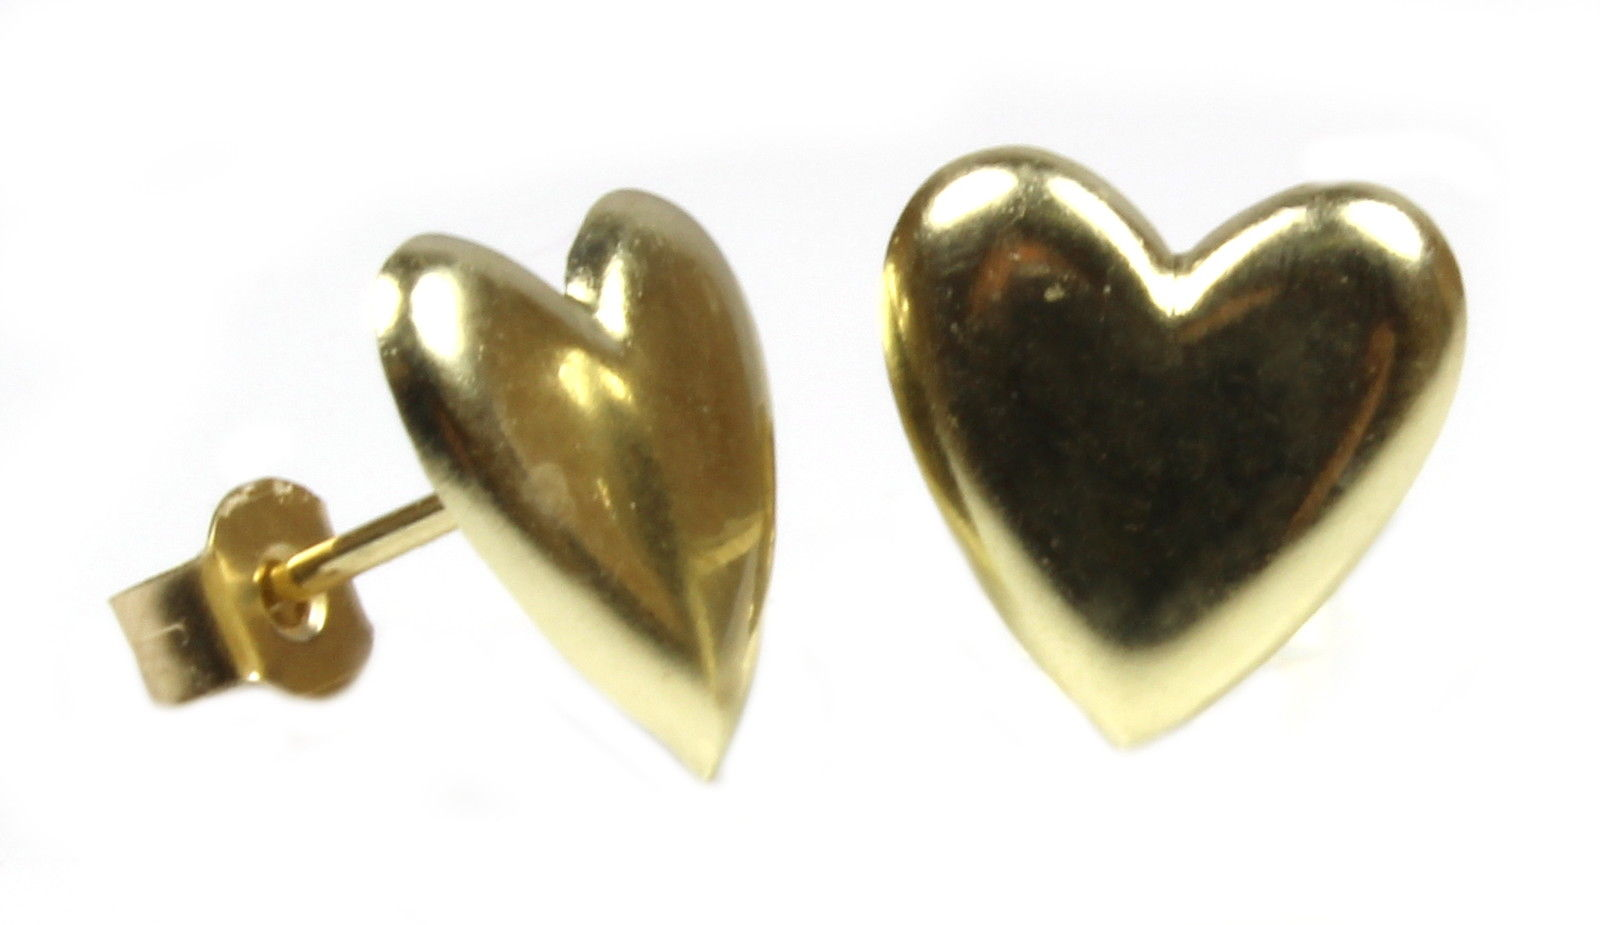 9ct Gold Stud Earrings Heart Design 7 Mm Post And Backs Also Yellow